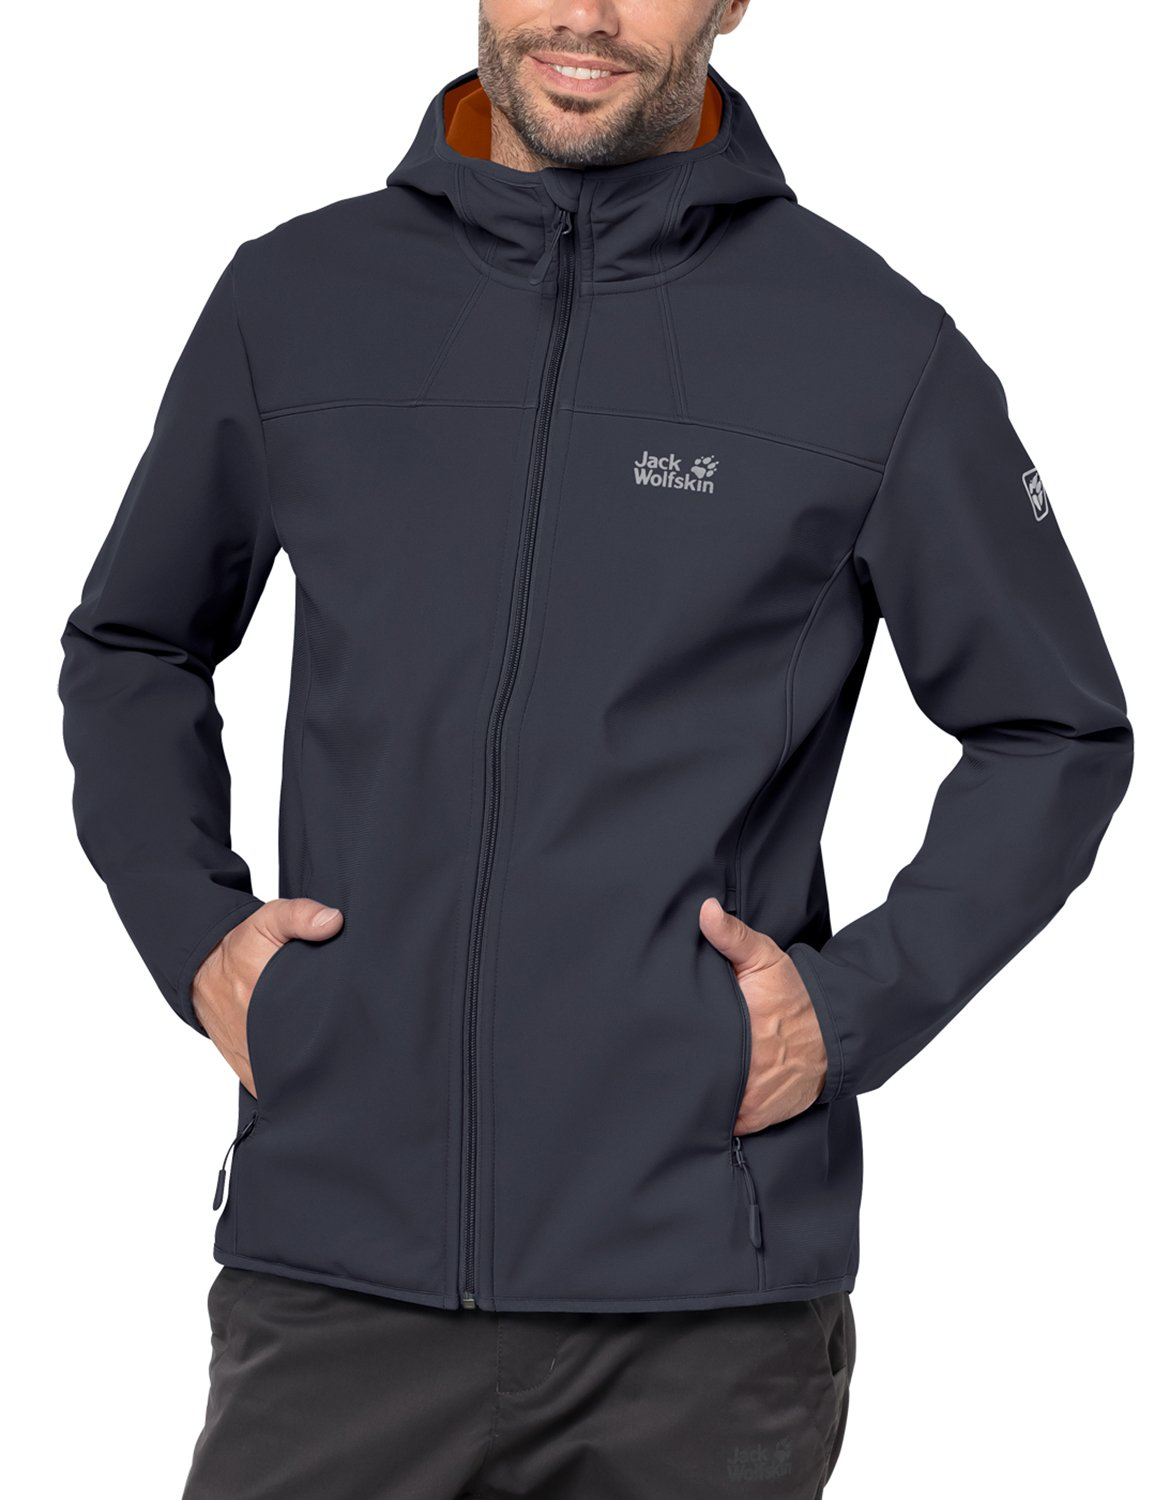 61xbrP2bHQL - Jack Wolfskin Northern Point Softshell Jacket Men, Men, NORTHERN POINT